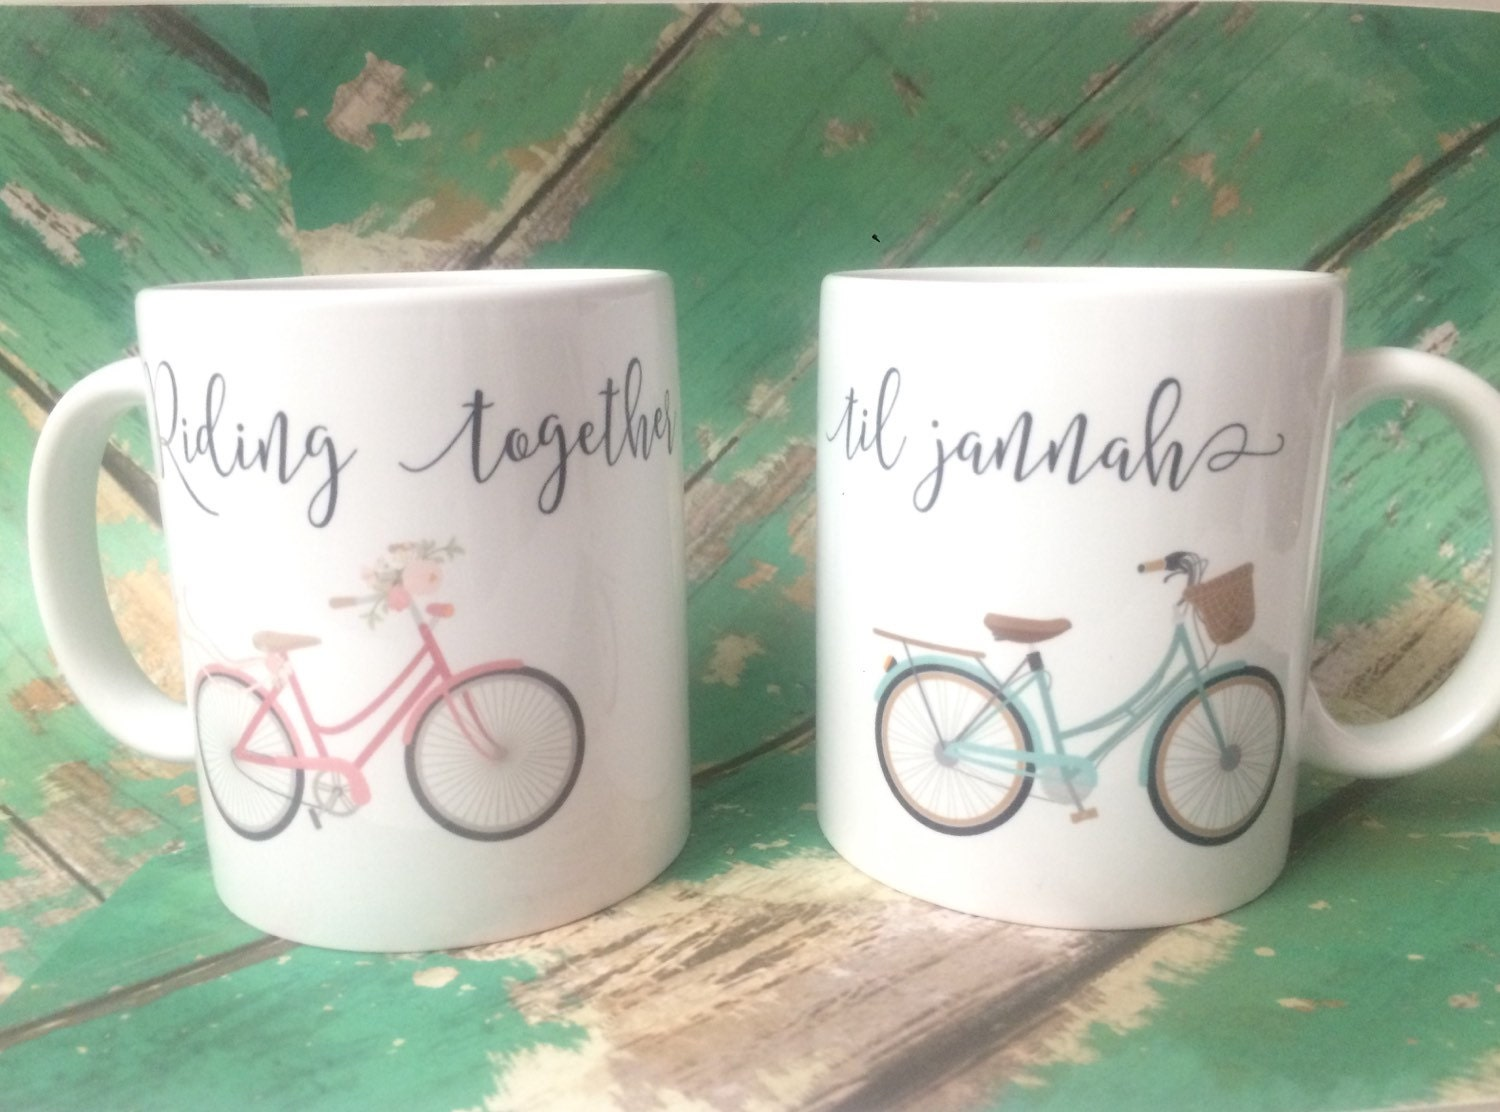 Riding together til Jannah couple mugs muslim wedding set